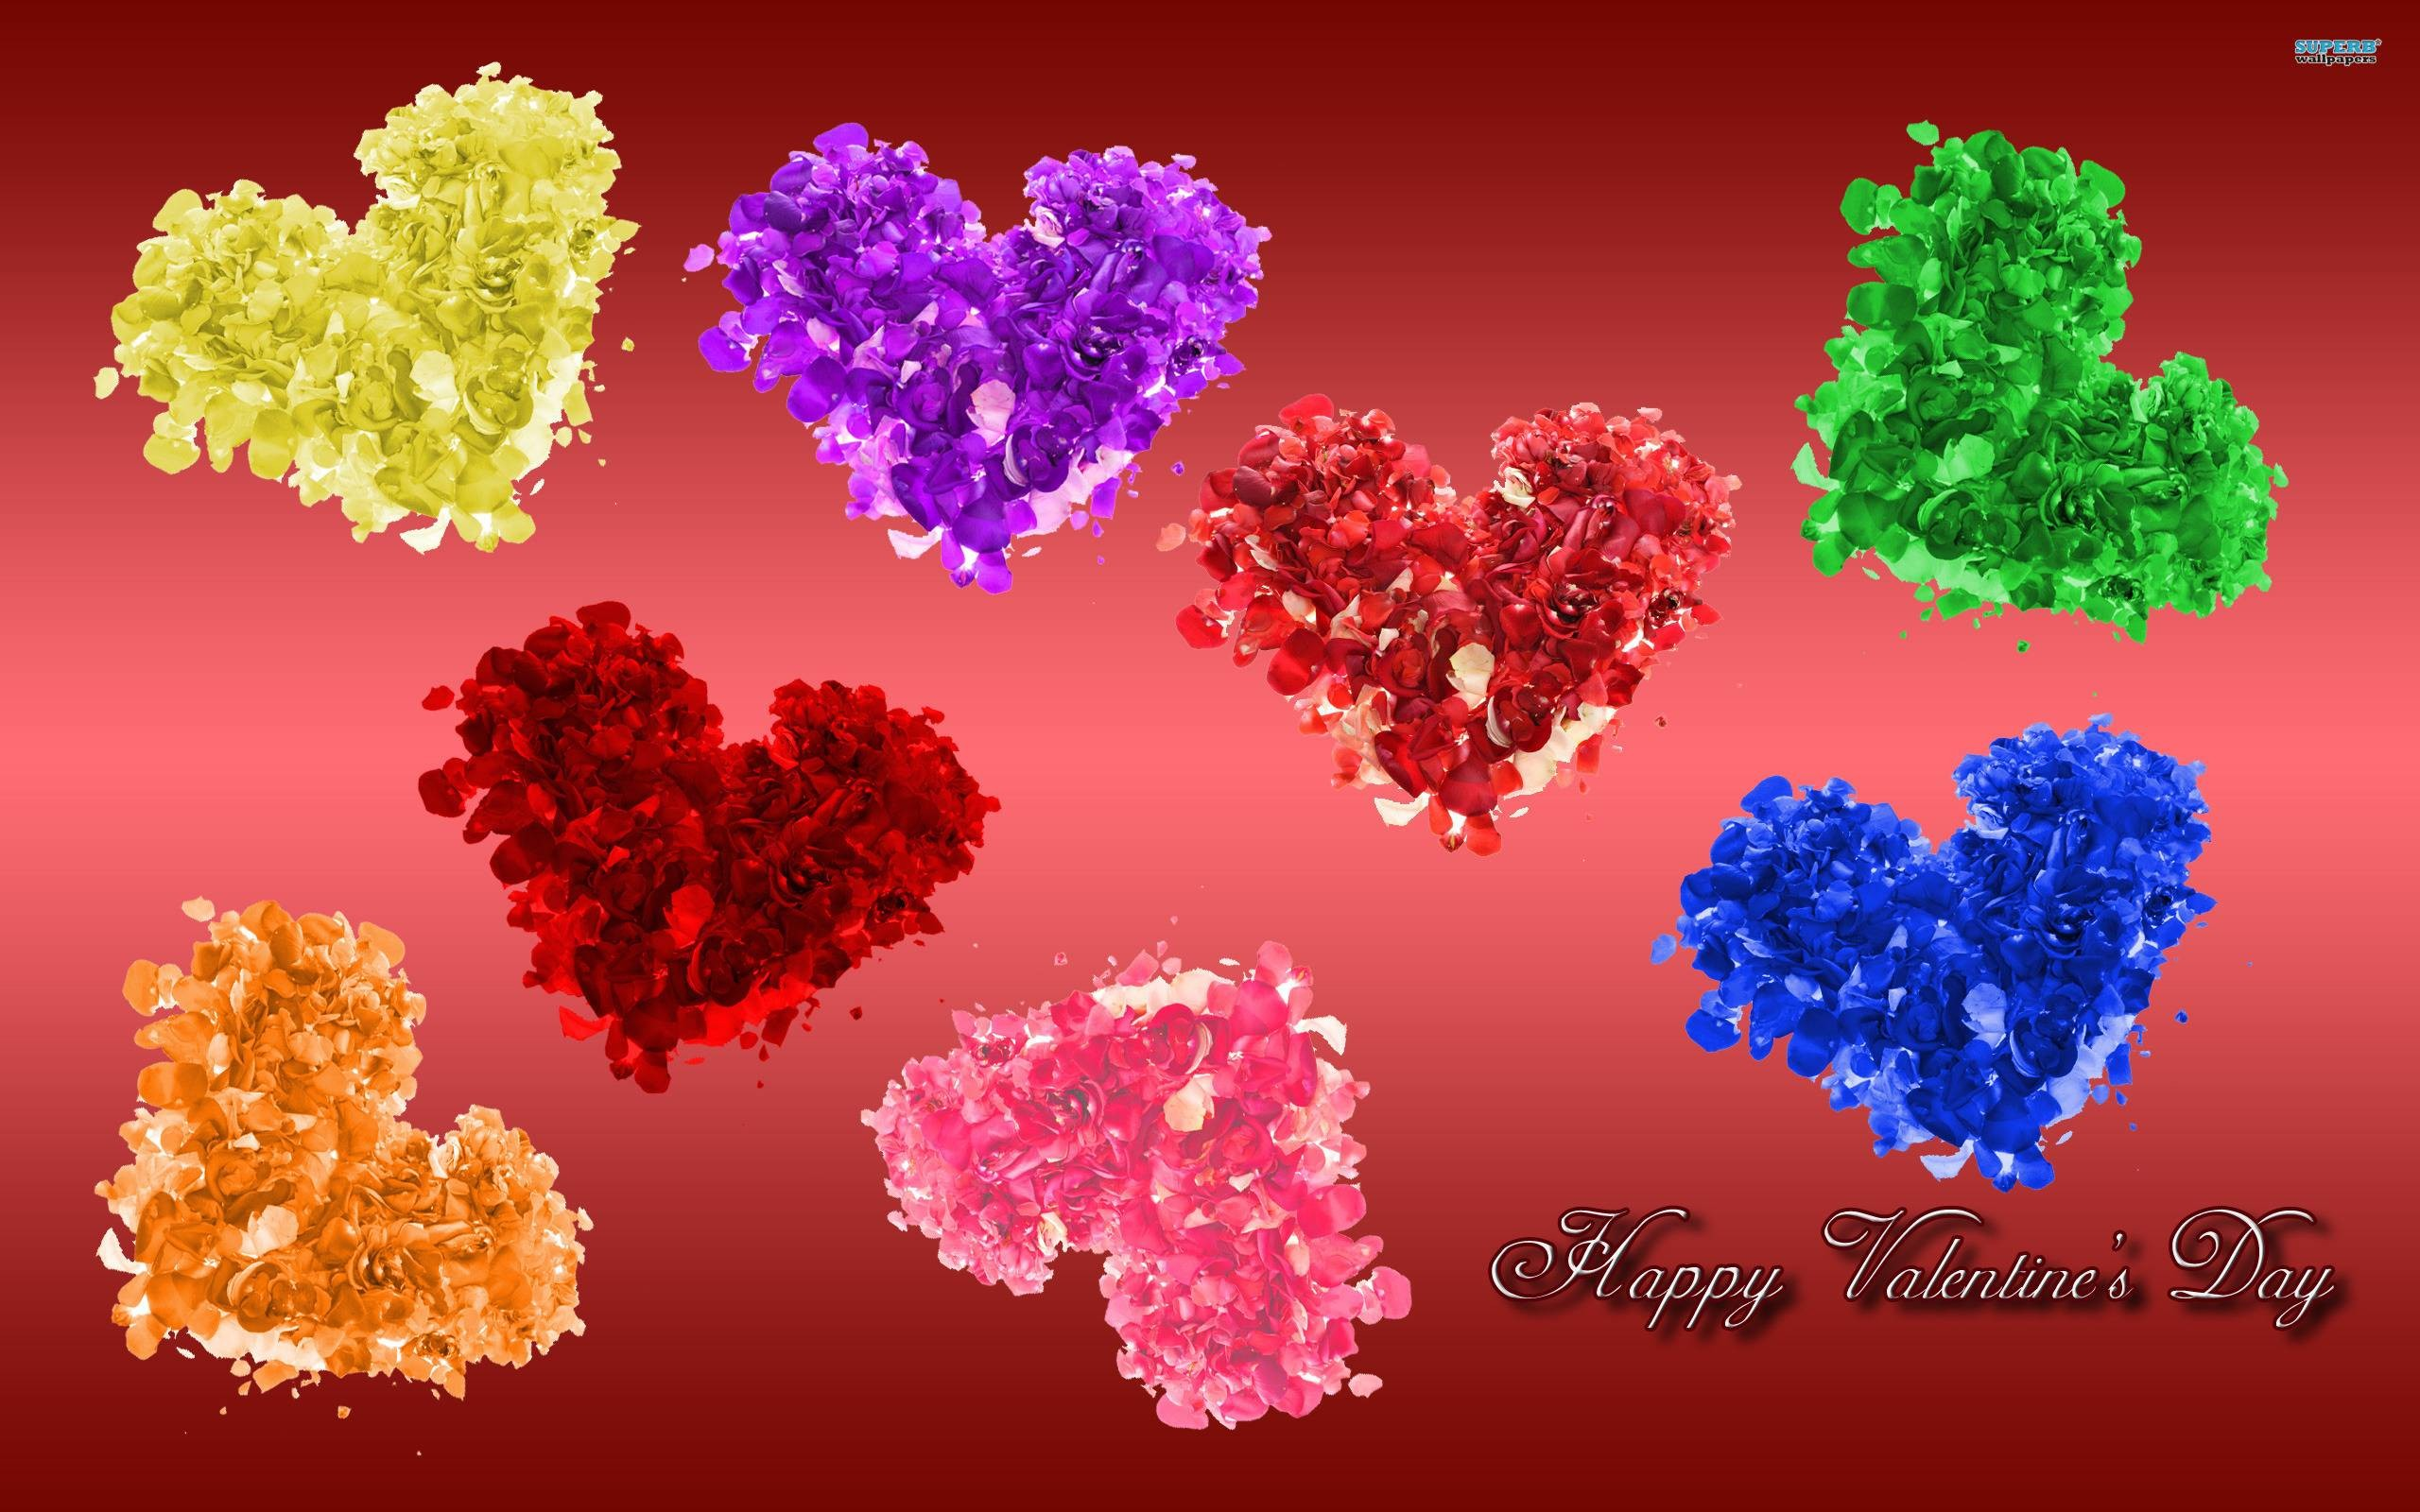 Wallpapers For Happy Valentines Day Wallpaper Desktop - Cute Happy Valentines Day , HD Wallpaper & Backgrounds